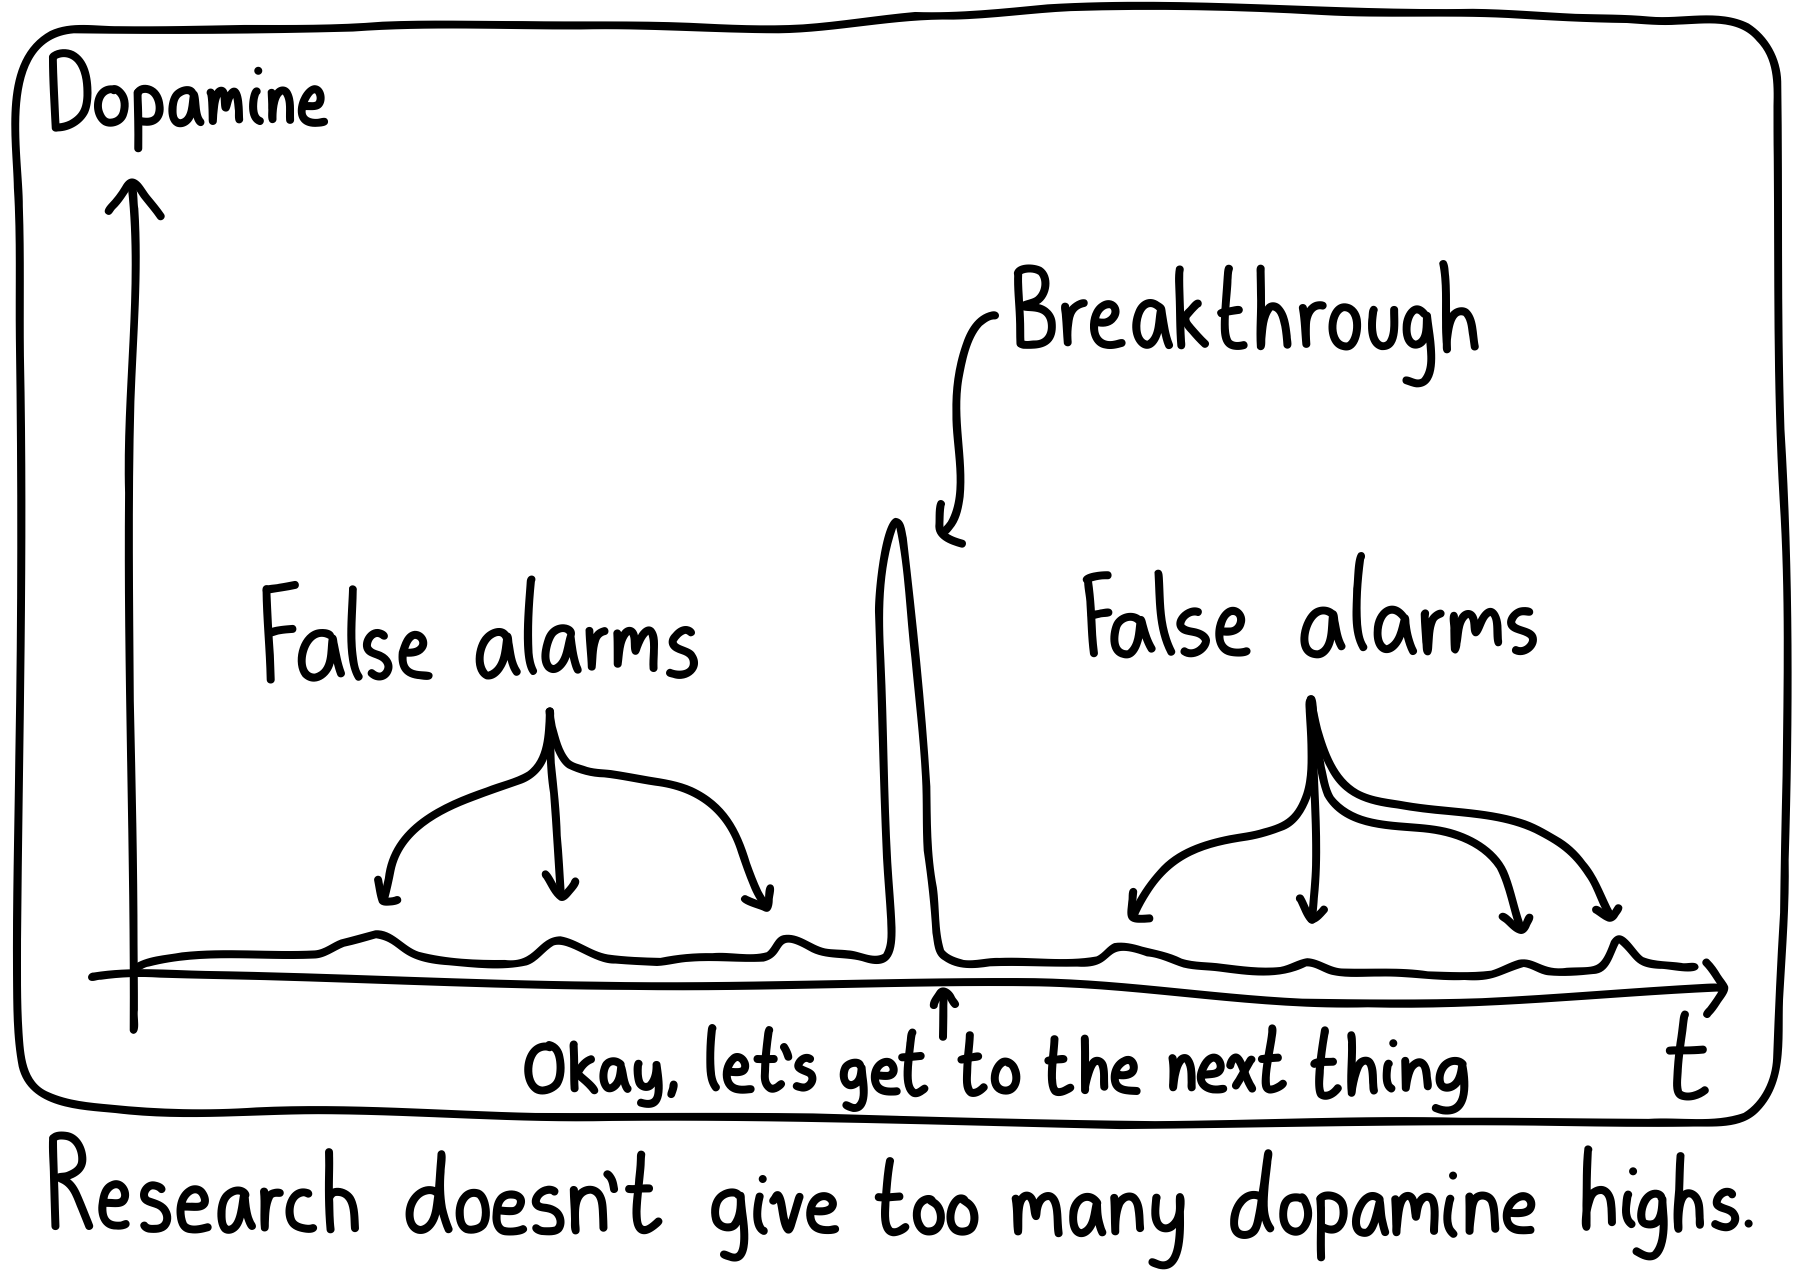 Graph of dopamine versus time for a scientist. Small blips are false alarms, and the breakthrough is a very prominent spike, but the dopamine crashes right after it.